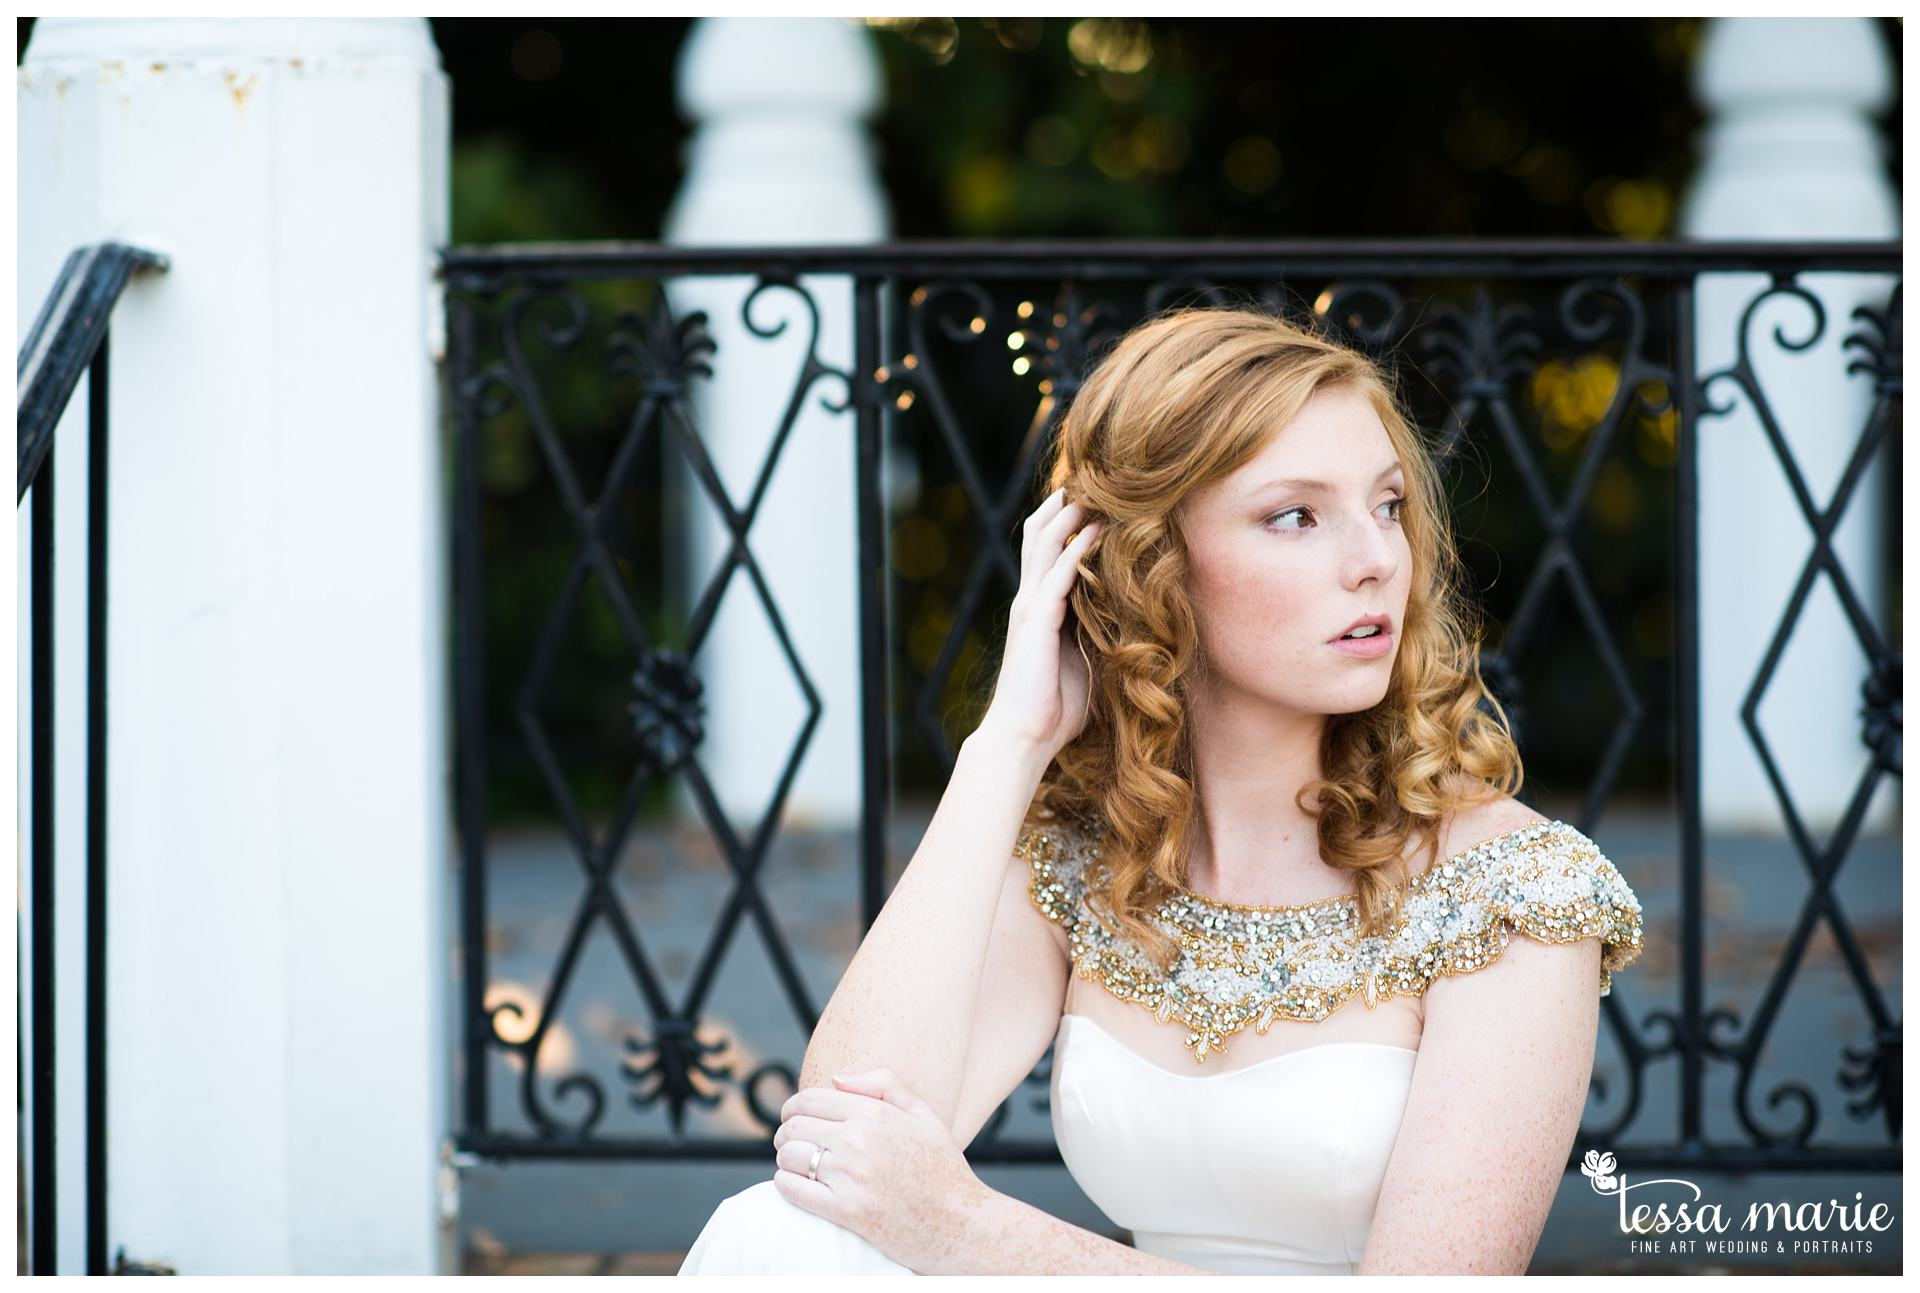 tessa_marie_weddings_legacy_story_focused_wedding_pictures_atlanta_wedding_photographer_family_pictures_portrait_Fine_art_memories_mothers_day_spring_moments_0369